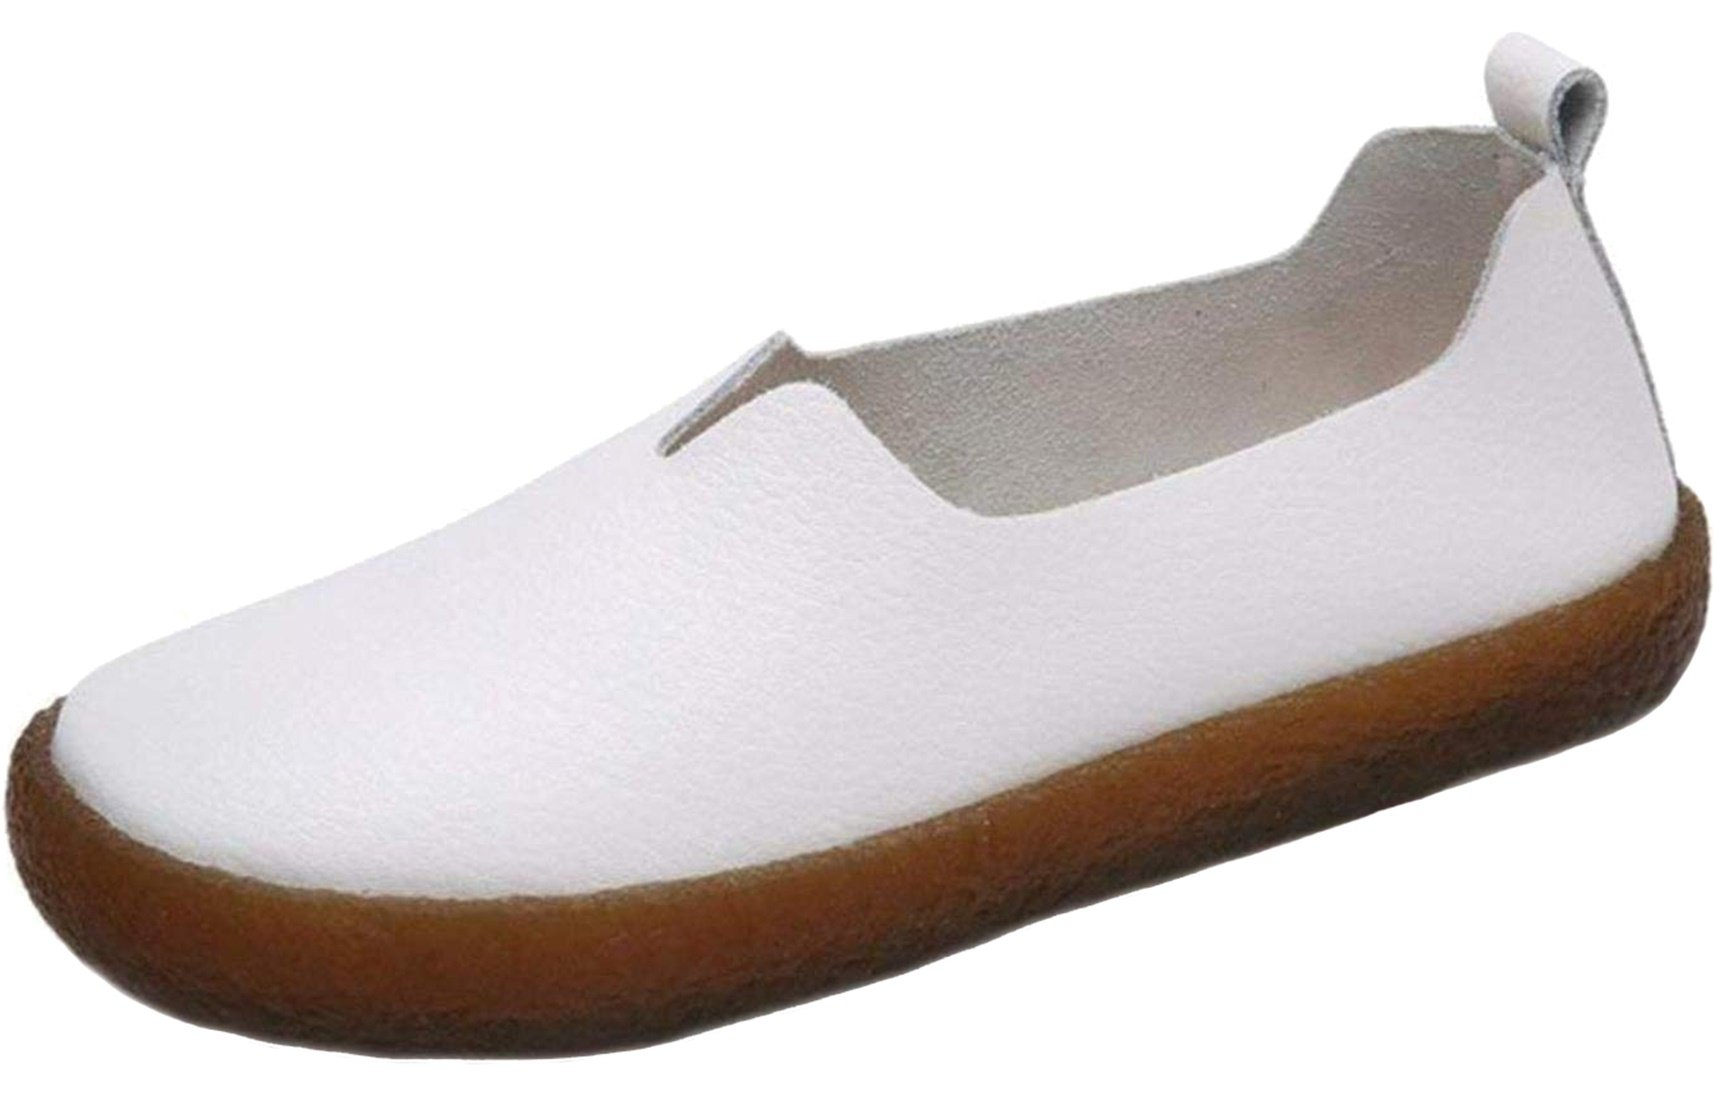 PPXID Women's Leather Slip-on Loafers Flat Mocassins Walking Shoes-White 10 US Size